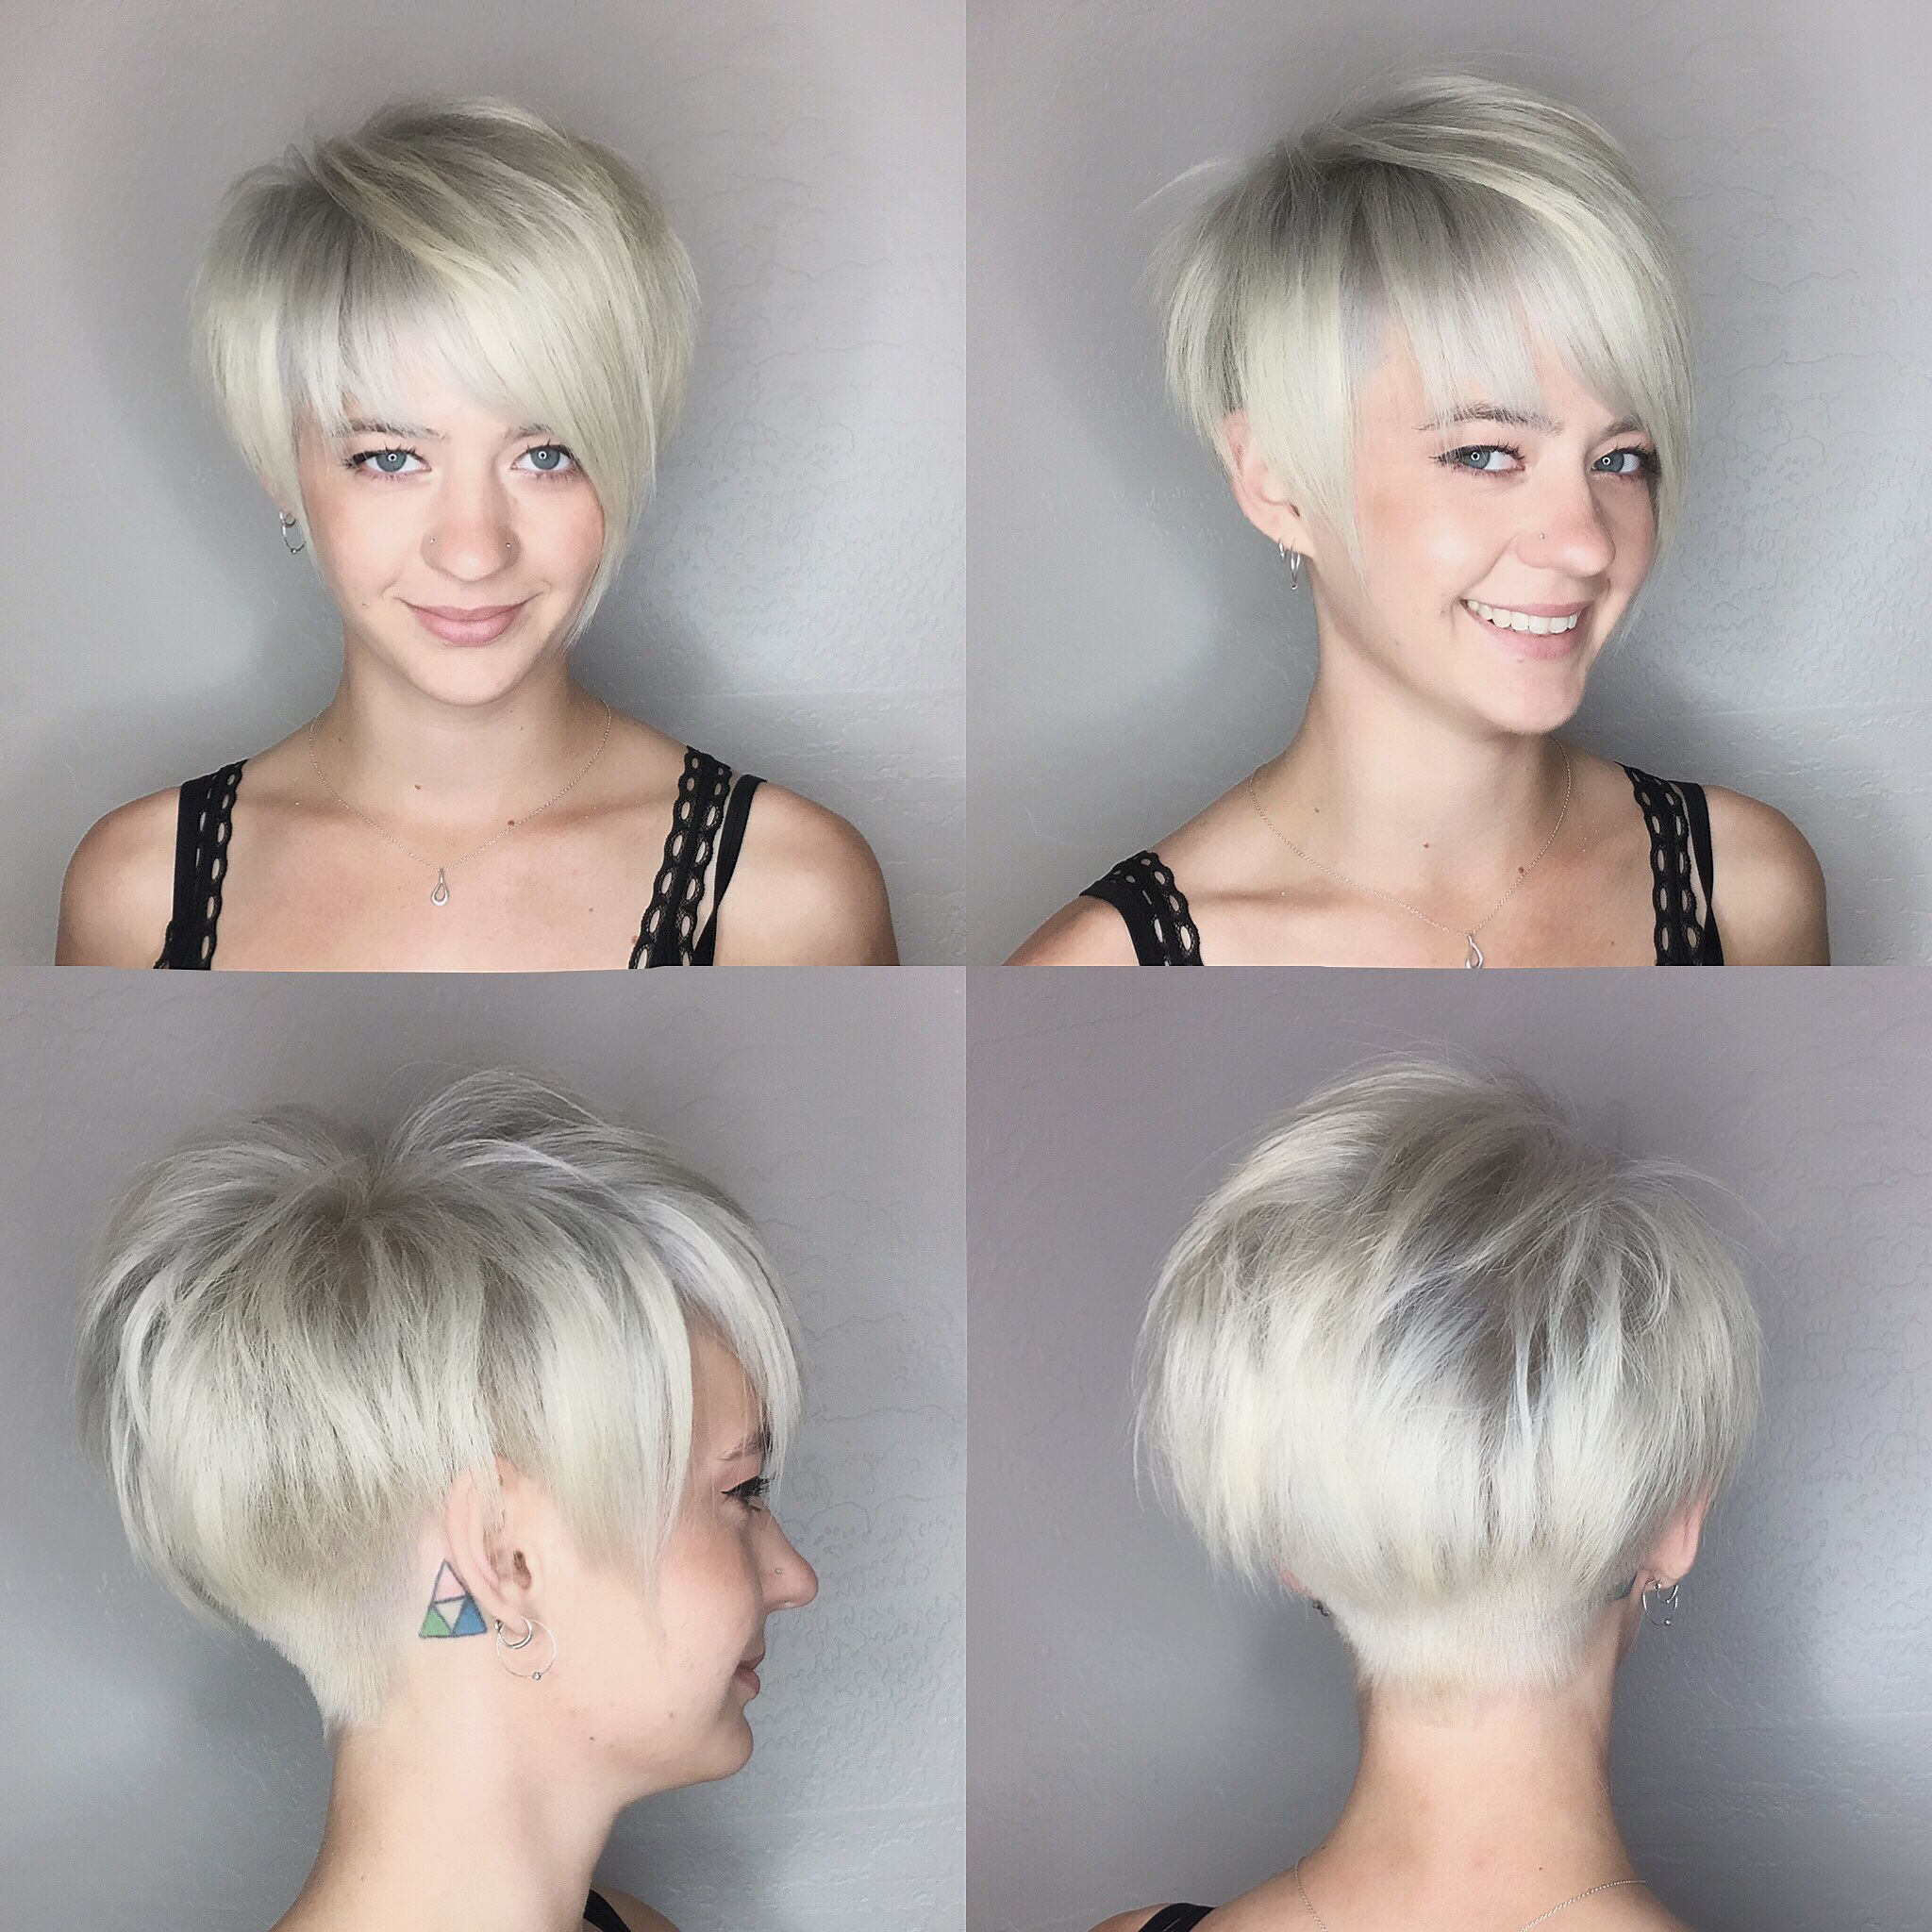 Pin By Kati Oevi On Haare Pinterest Pixie Haircut Pixies And